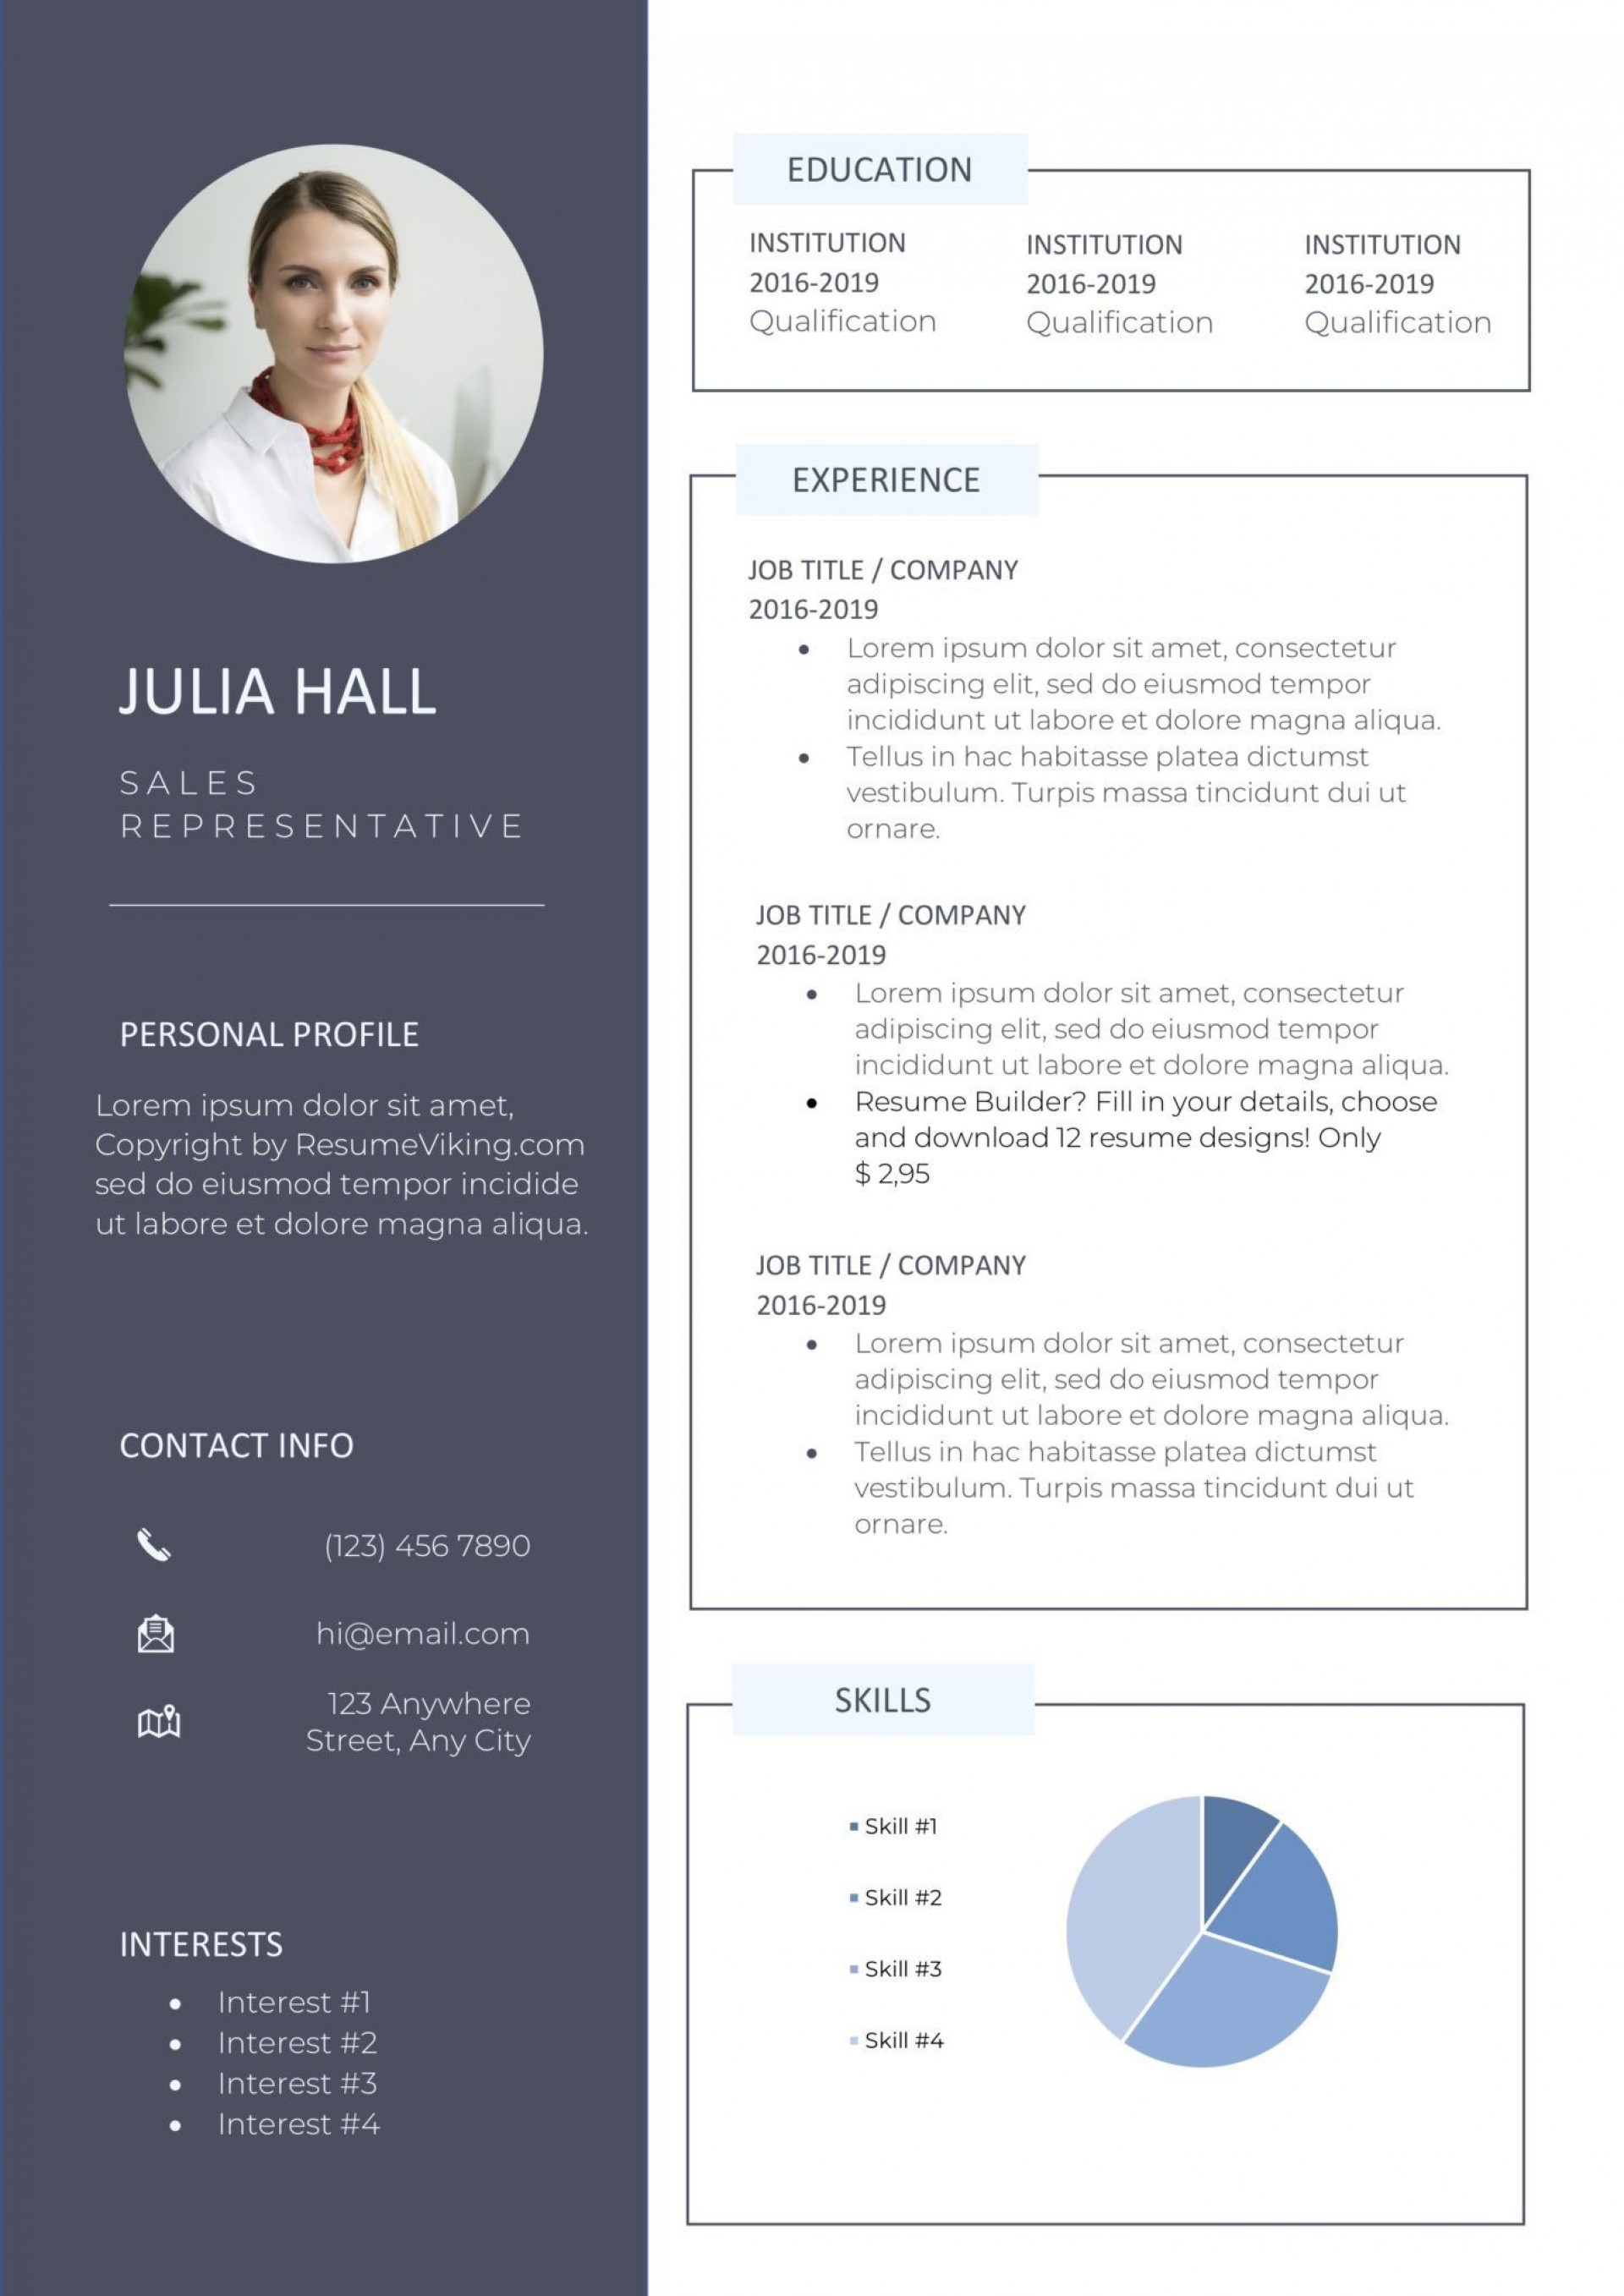 009 Breathtaking Resume Template Word 2003 Free Download Photo  Downloads1920